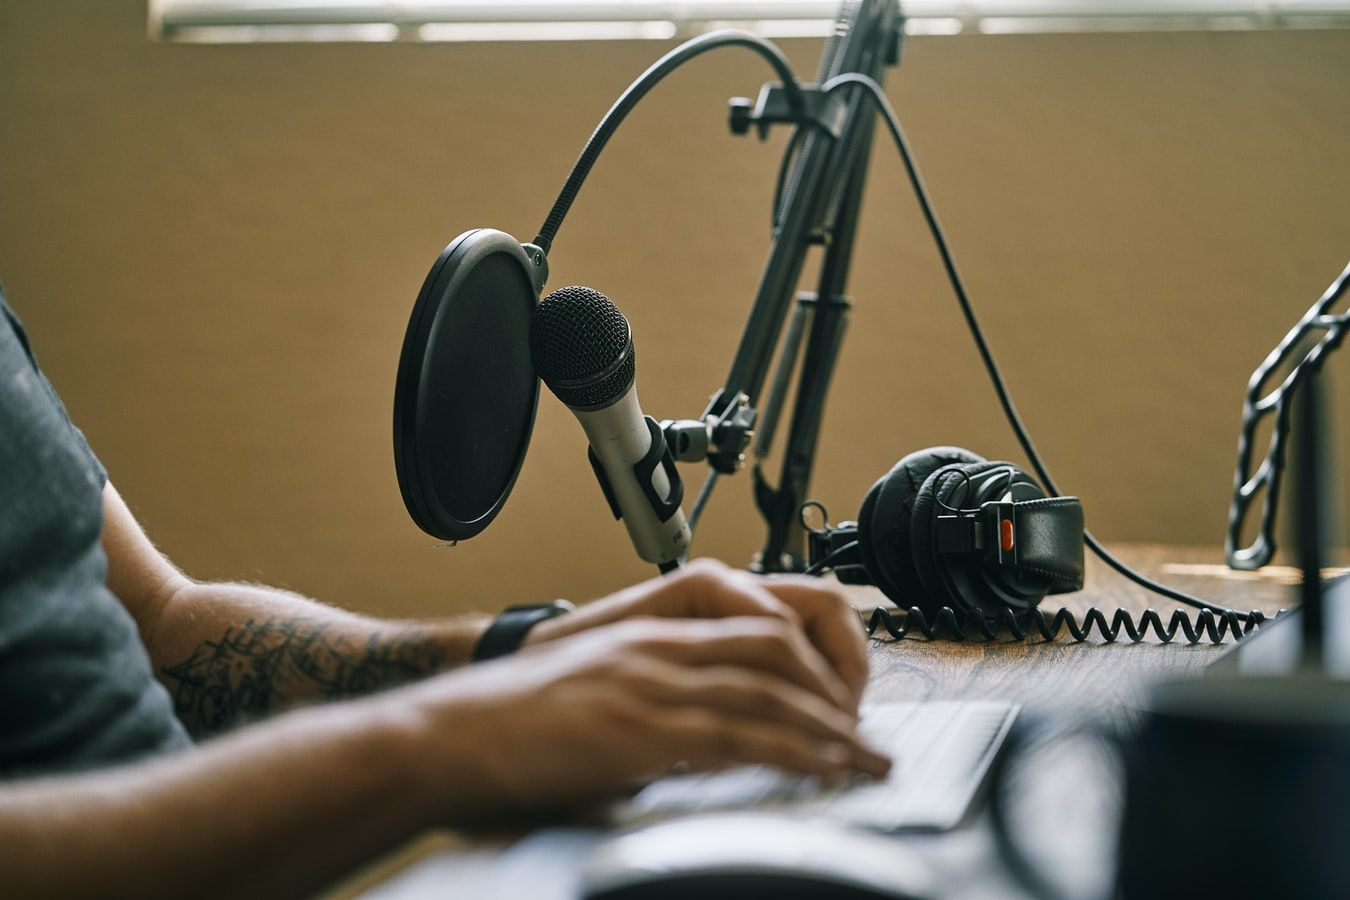 Man with microphone recording podcast in home studio